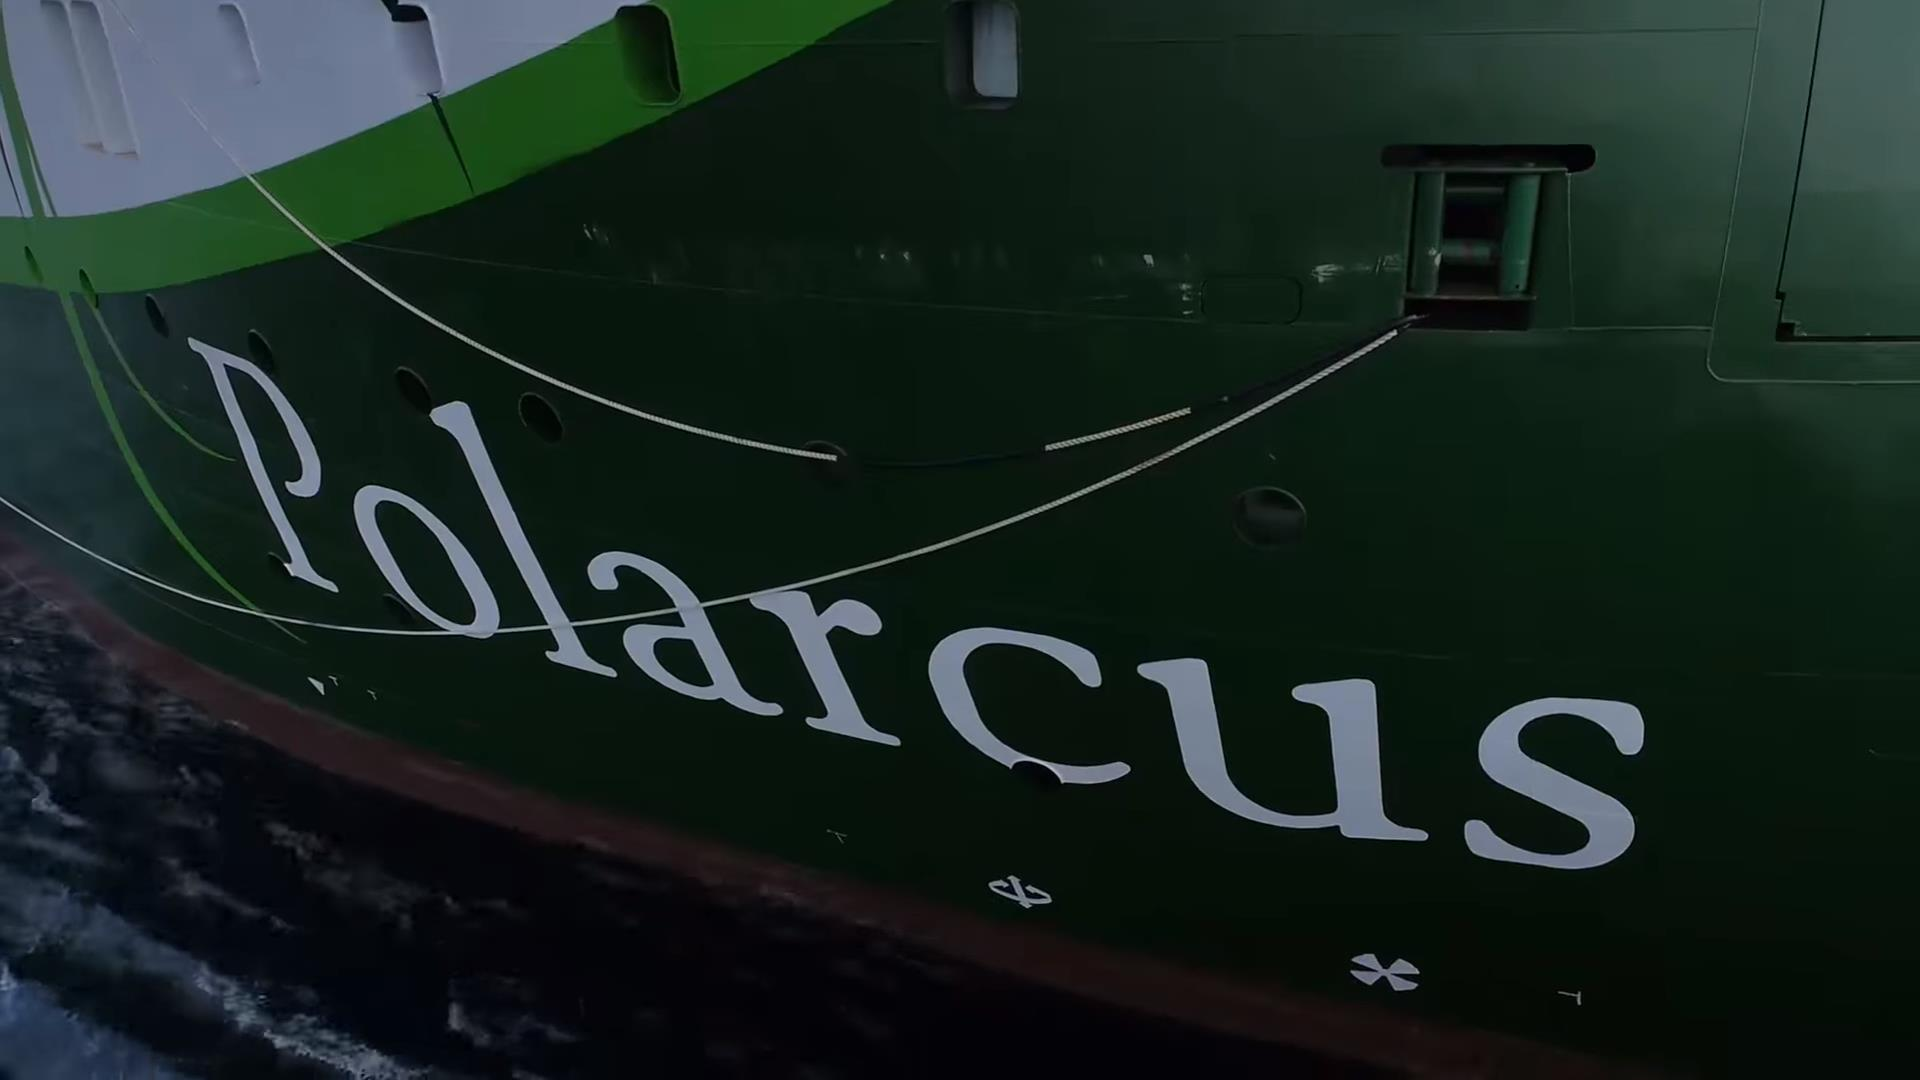 Polarcus stock crashes on loan default news - Offshore Energy